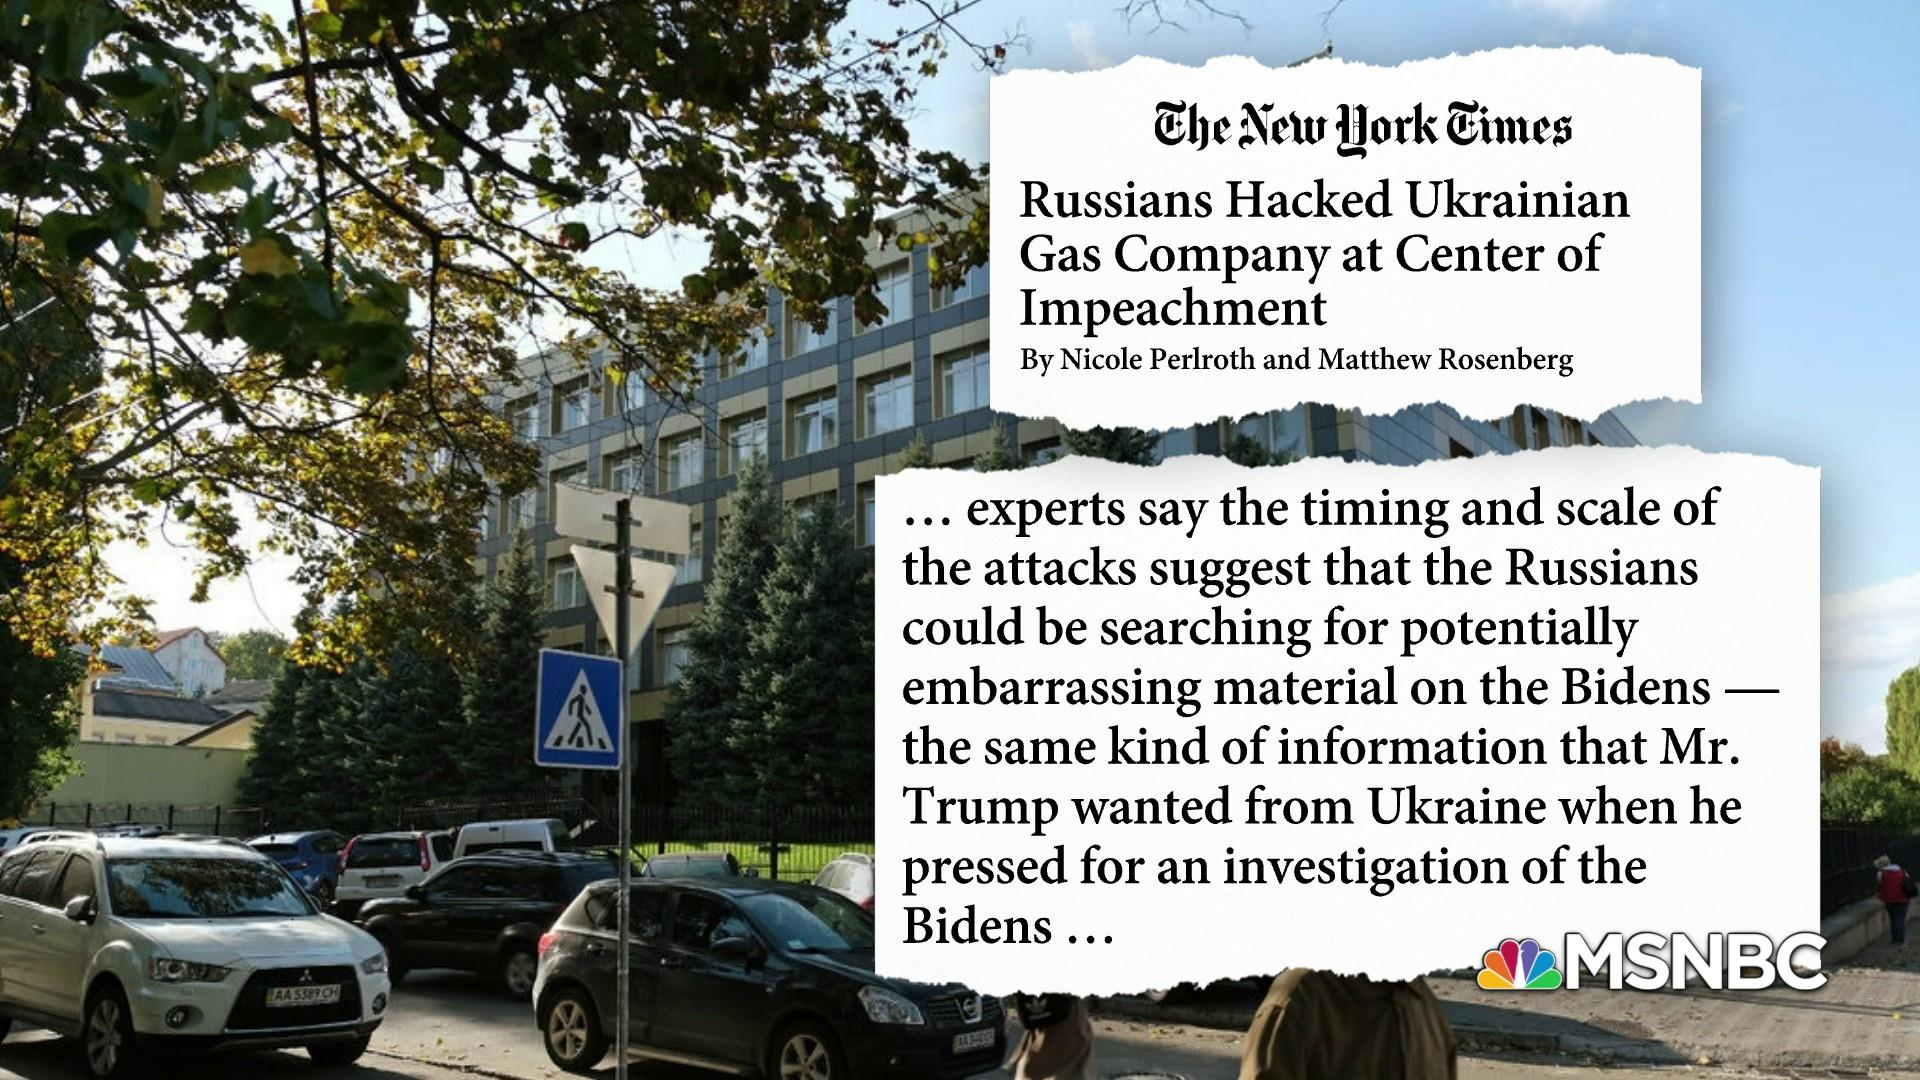 NYT: Russians hacked Ukraine gas company at center of Trump's impeachment